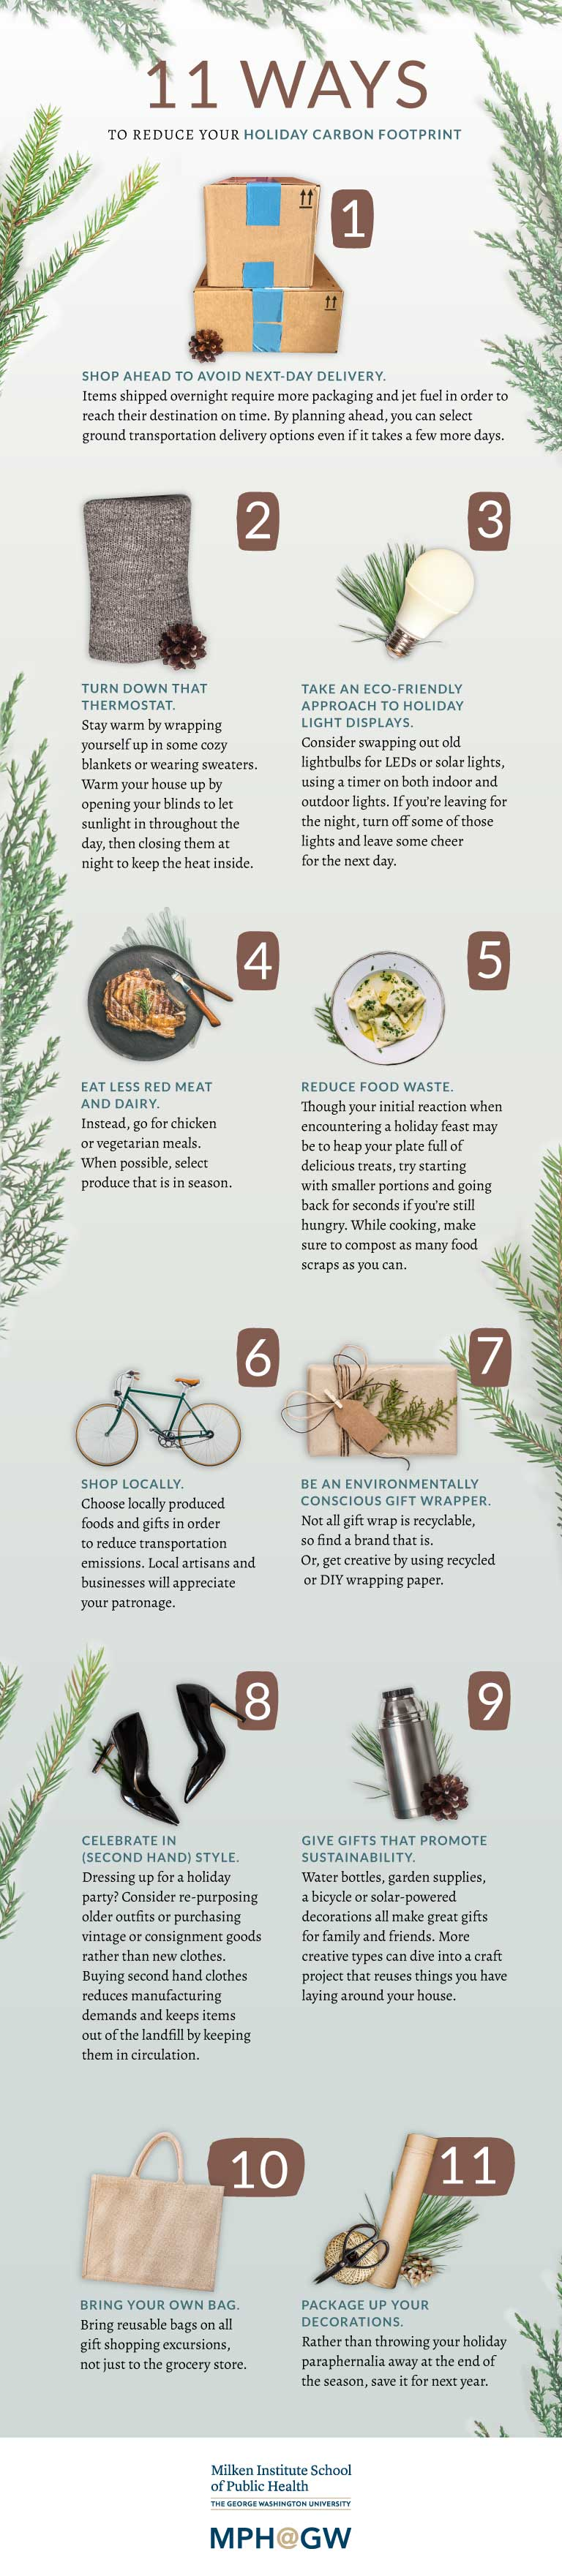 Infographic showing 11 ways to reduce your holiday carbon footprint.